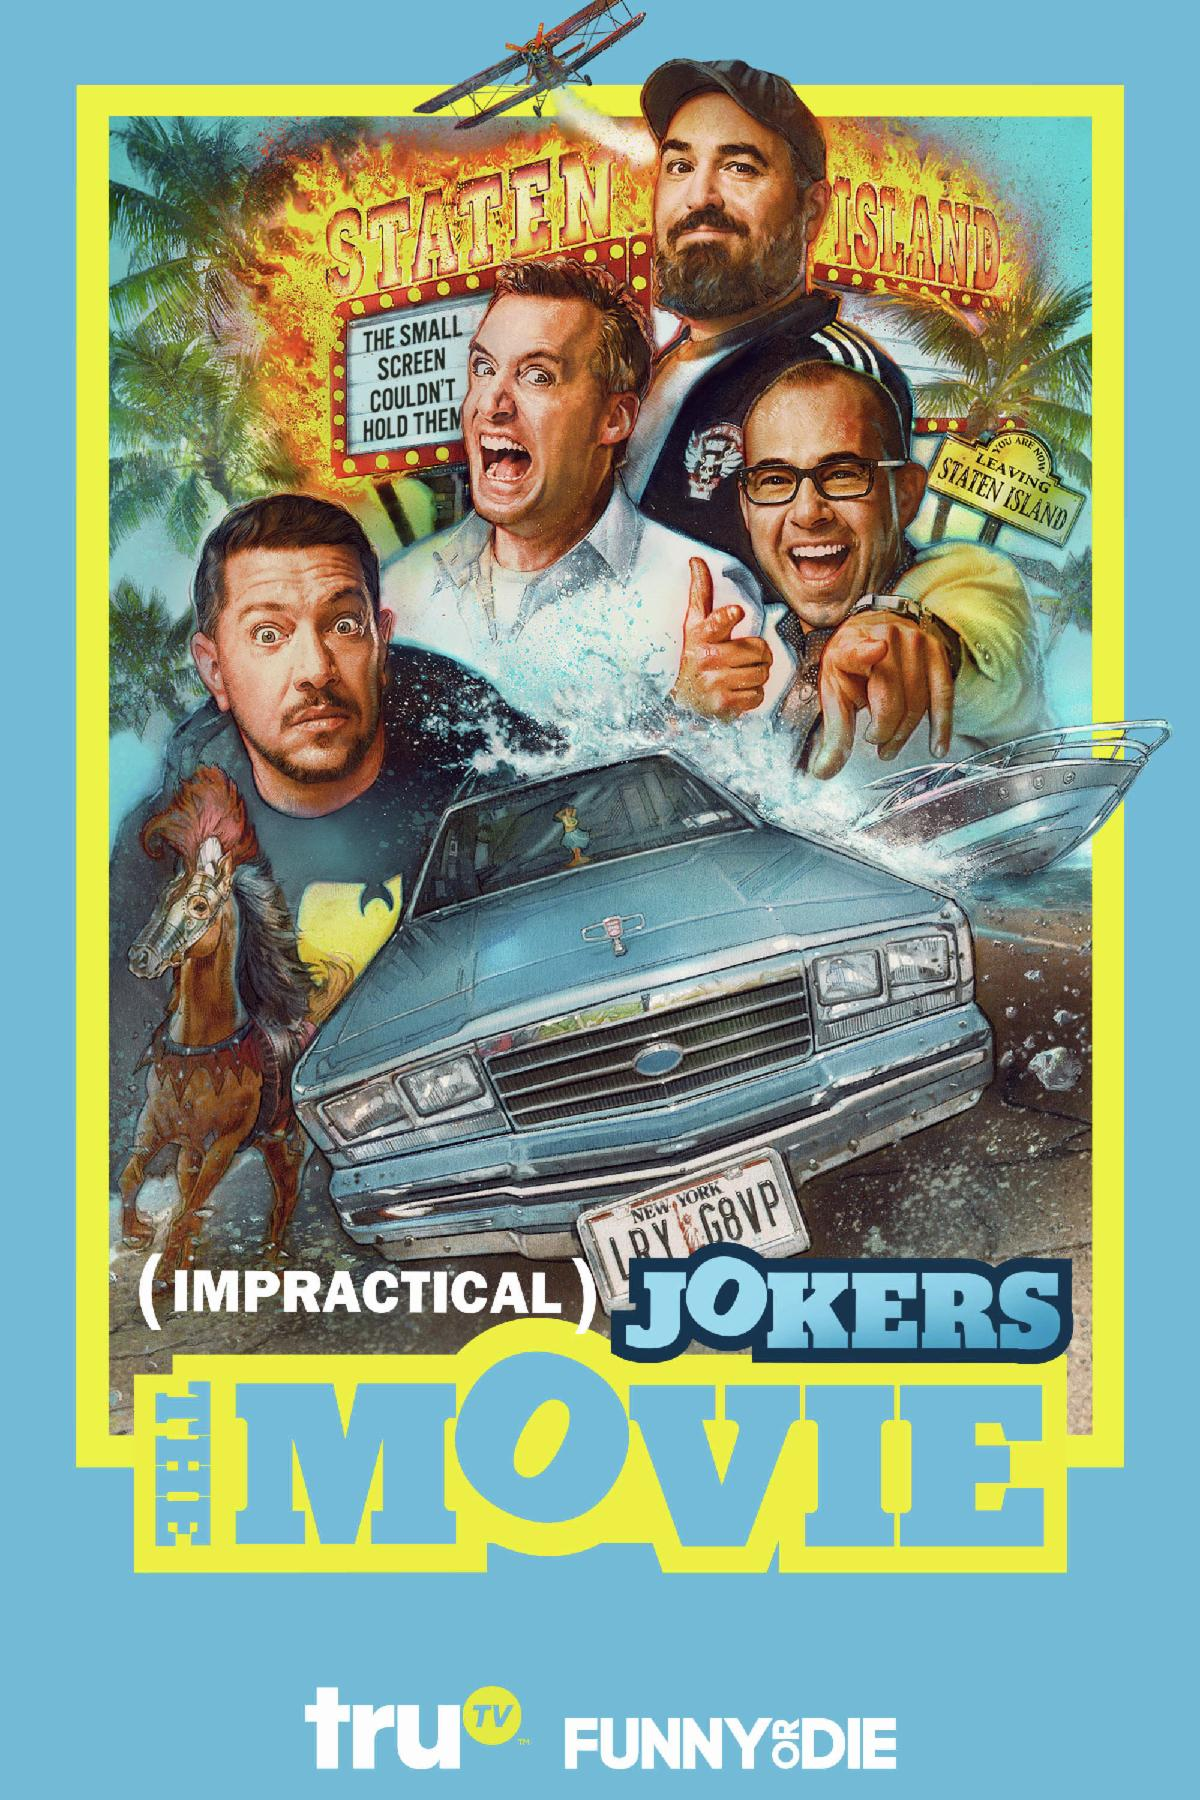 Impractical Jokers The Movie Blu-ray Review